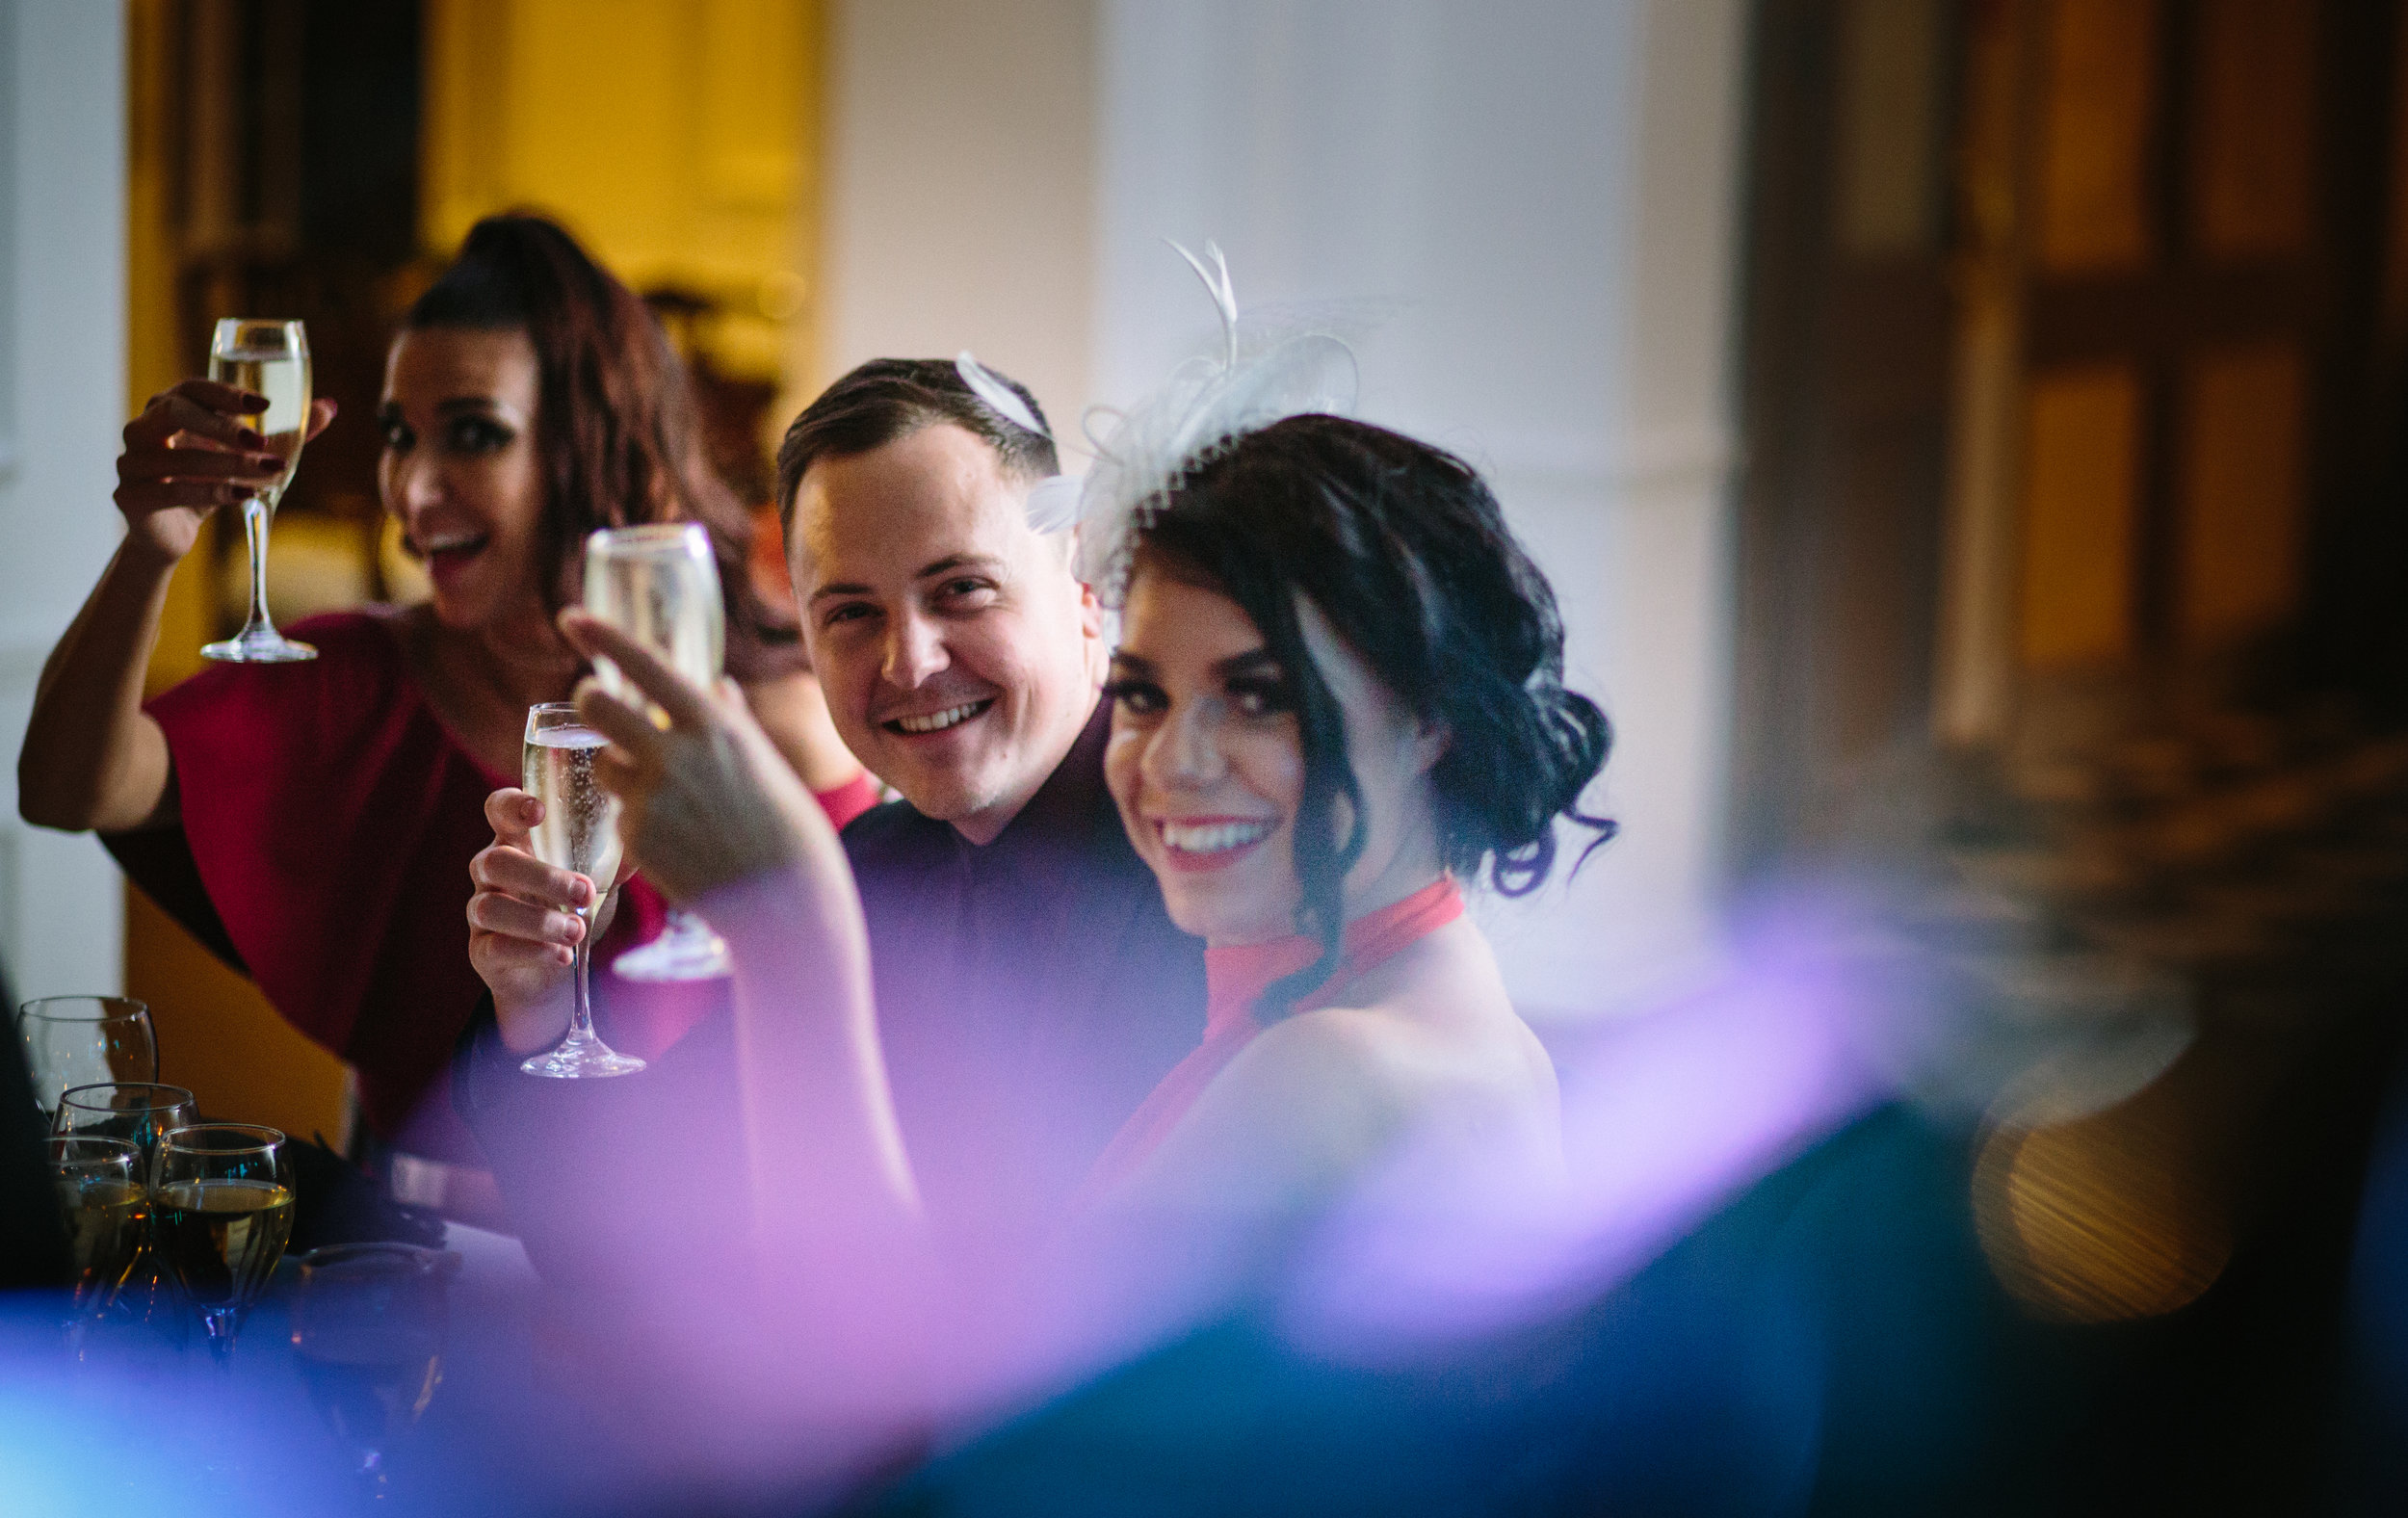 southdowns-manor-sussex-winter-wedding-photography-candids-106